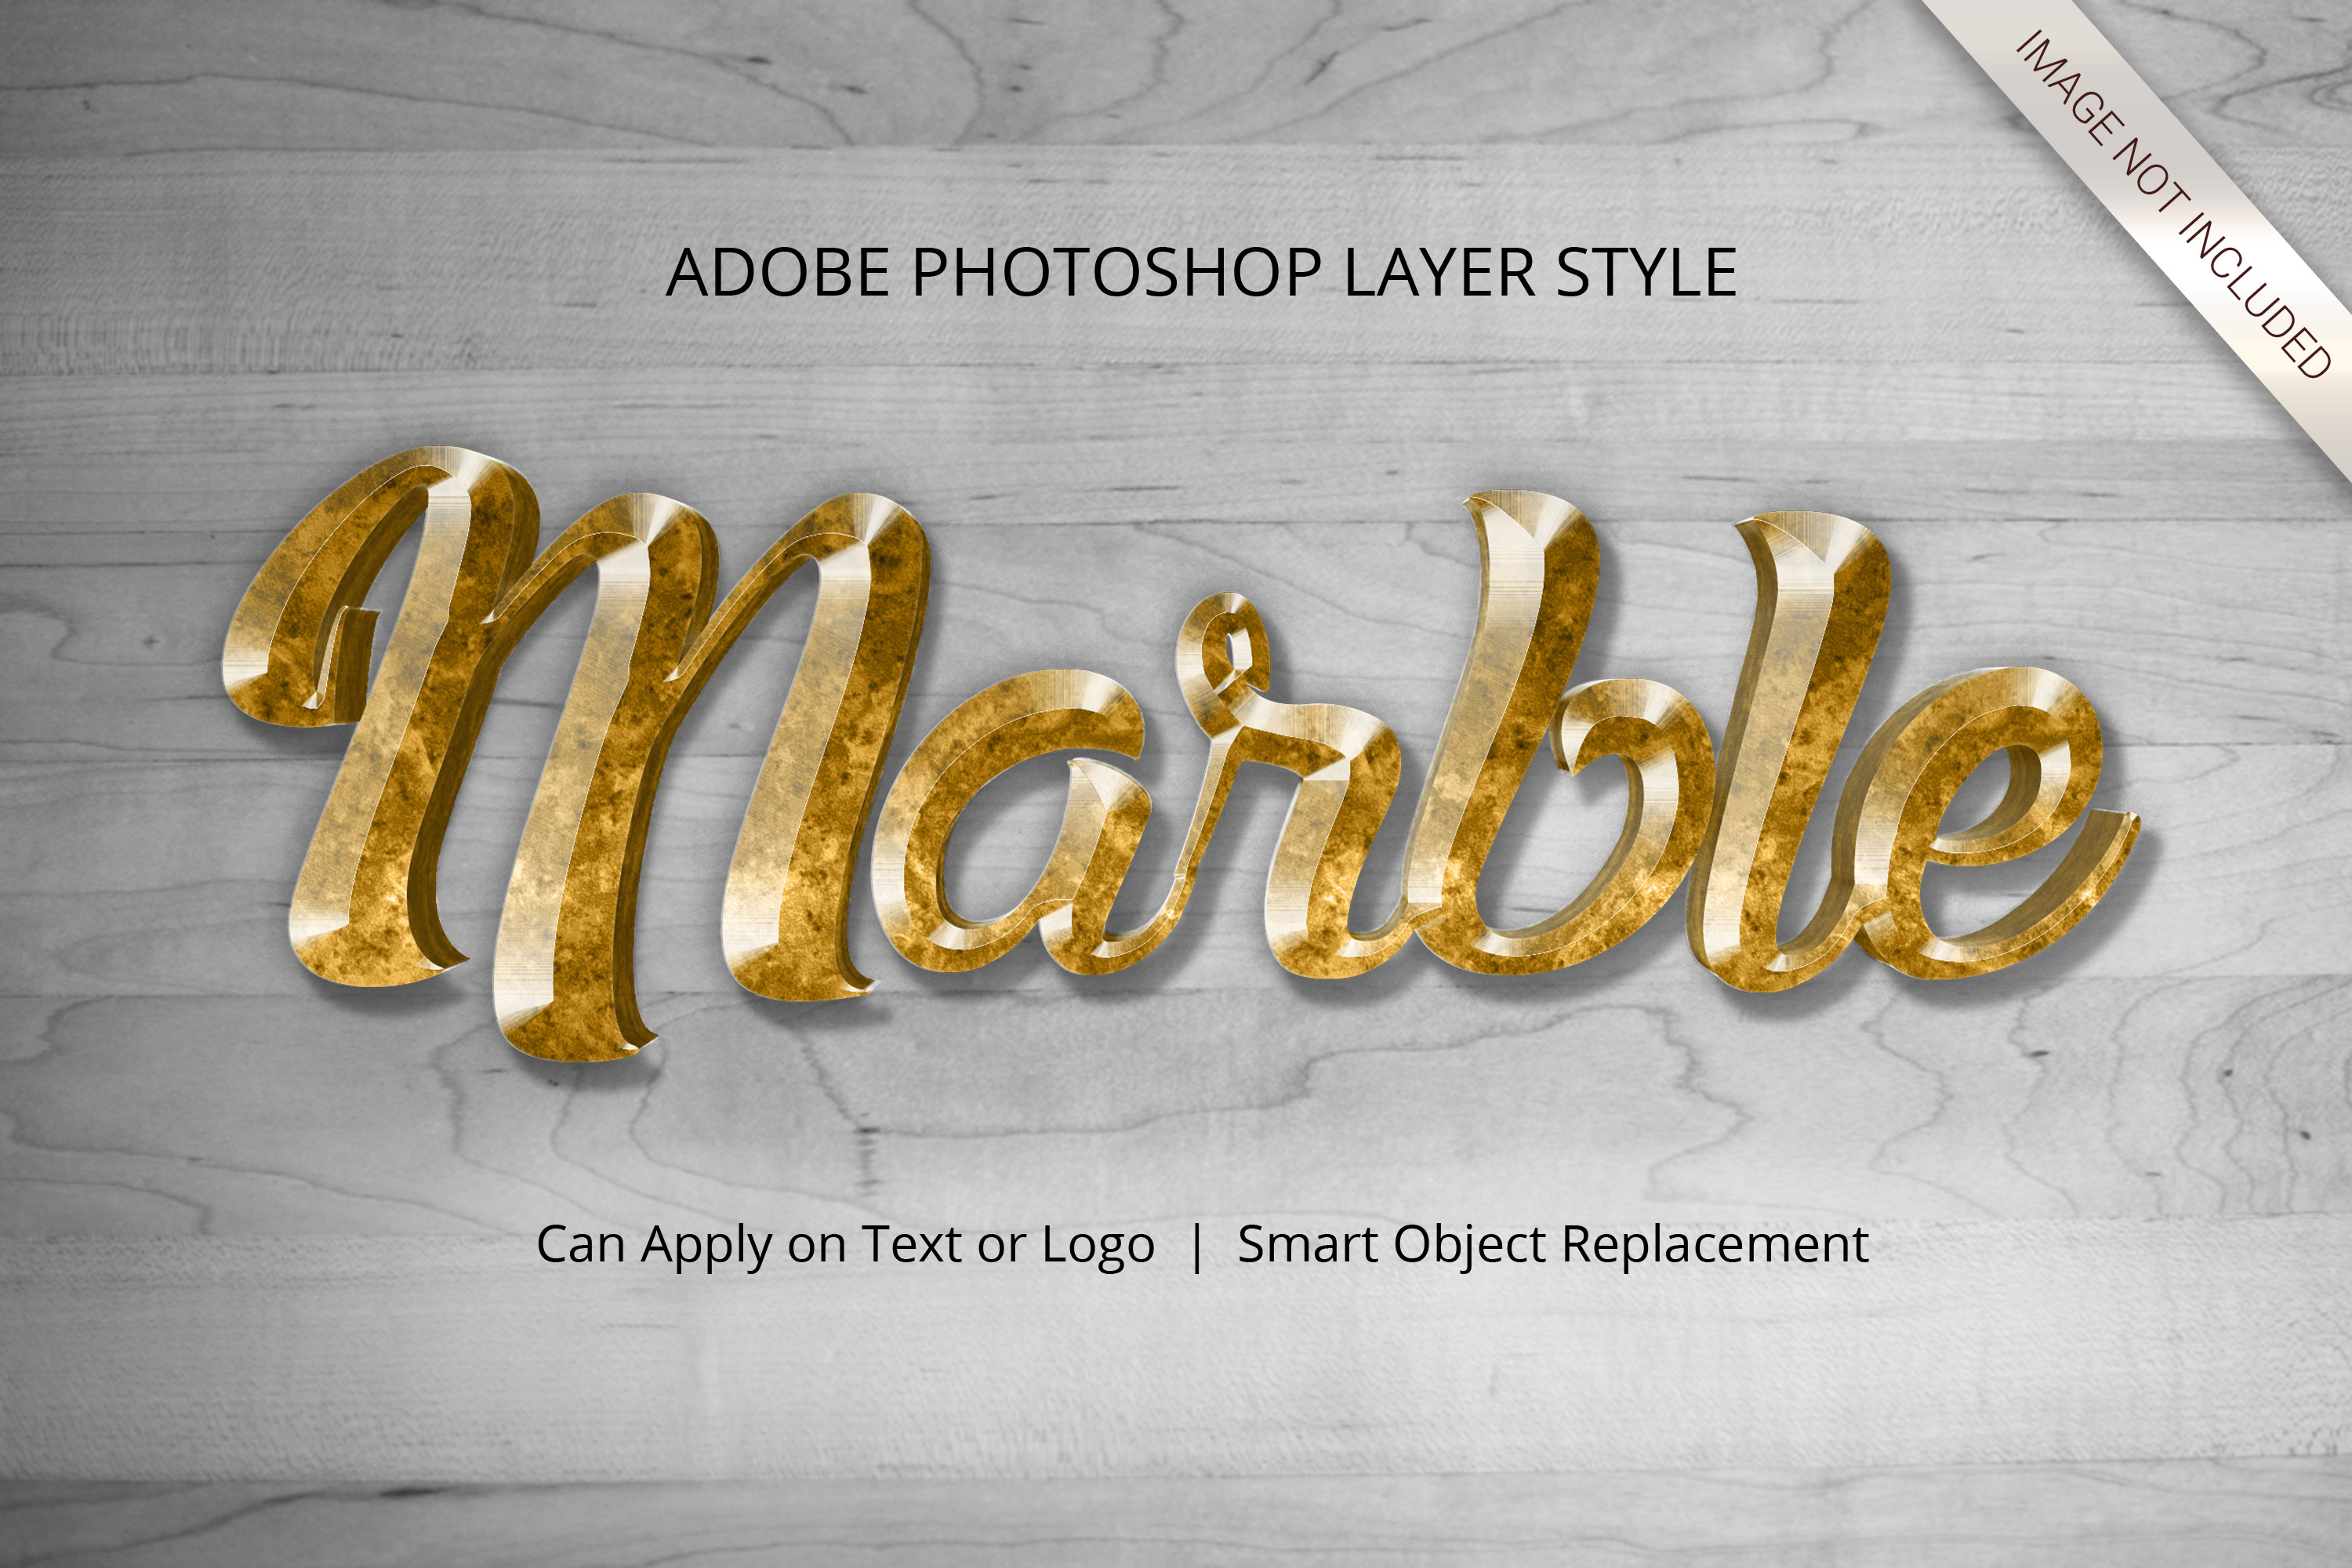 Download Free Photoshop Marble Psychadelic Layer Style Graphic By Anomali Bisu for Cricut Explore, Silhouette and other cutting machines.